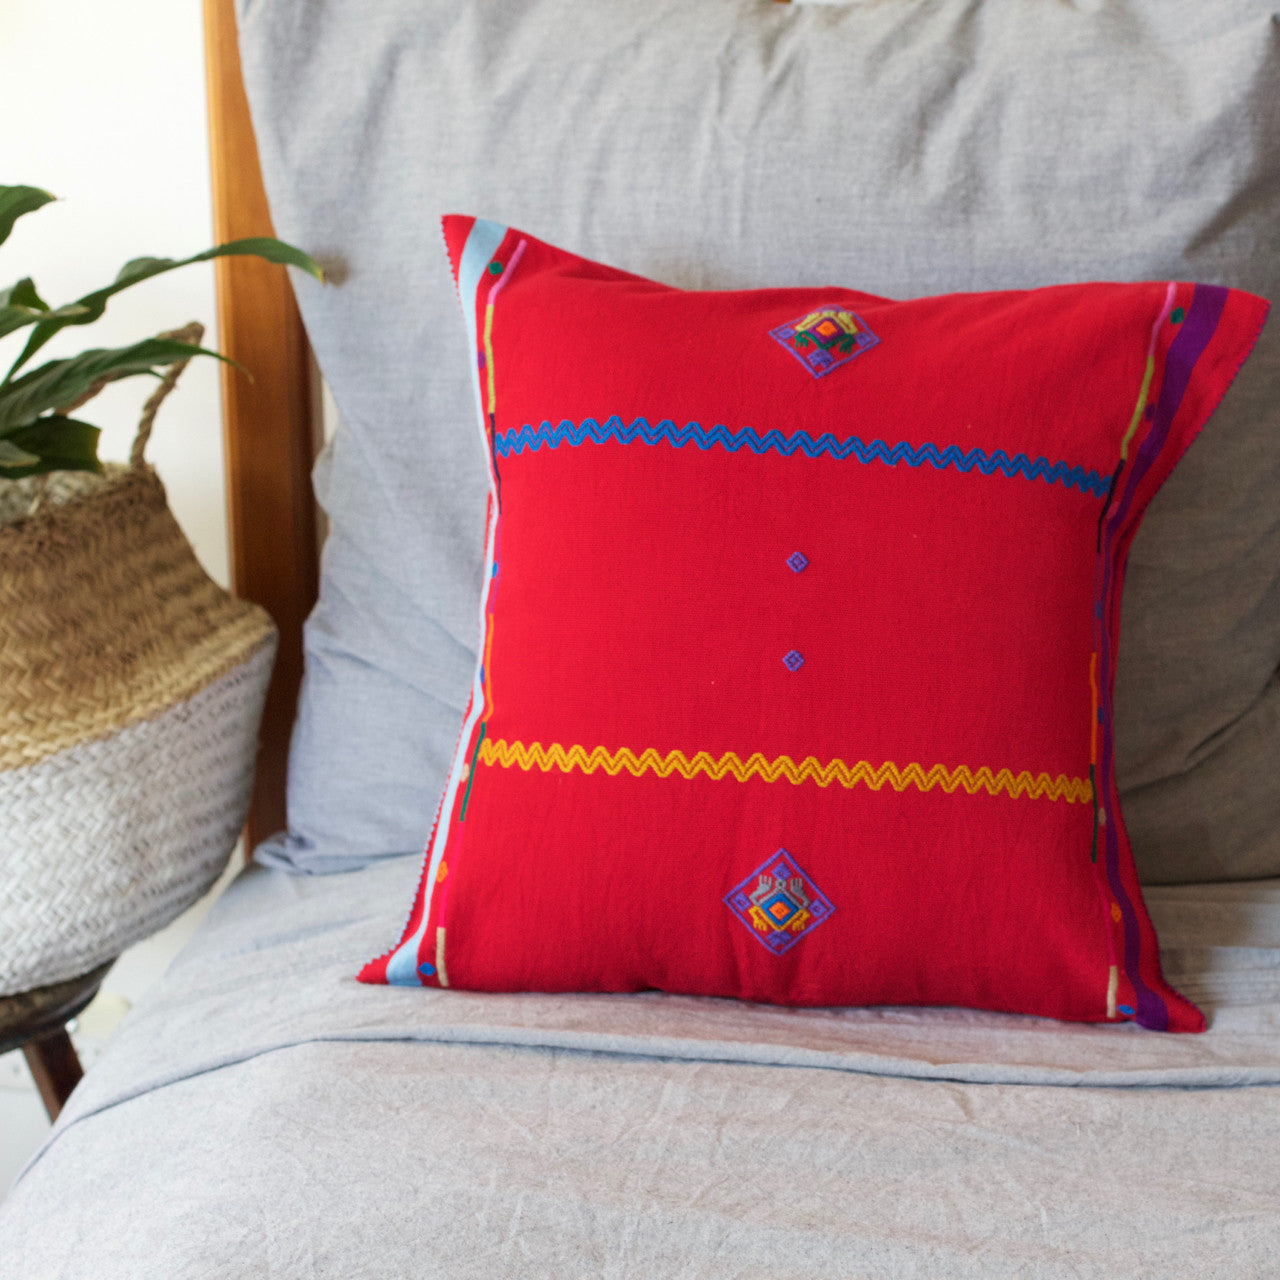 Sapo Cushion - Cielo Collective Red with Purple & Pale Blue Stripe Mexico Guatemala Handmade Ethical Noosa Australia